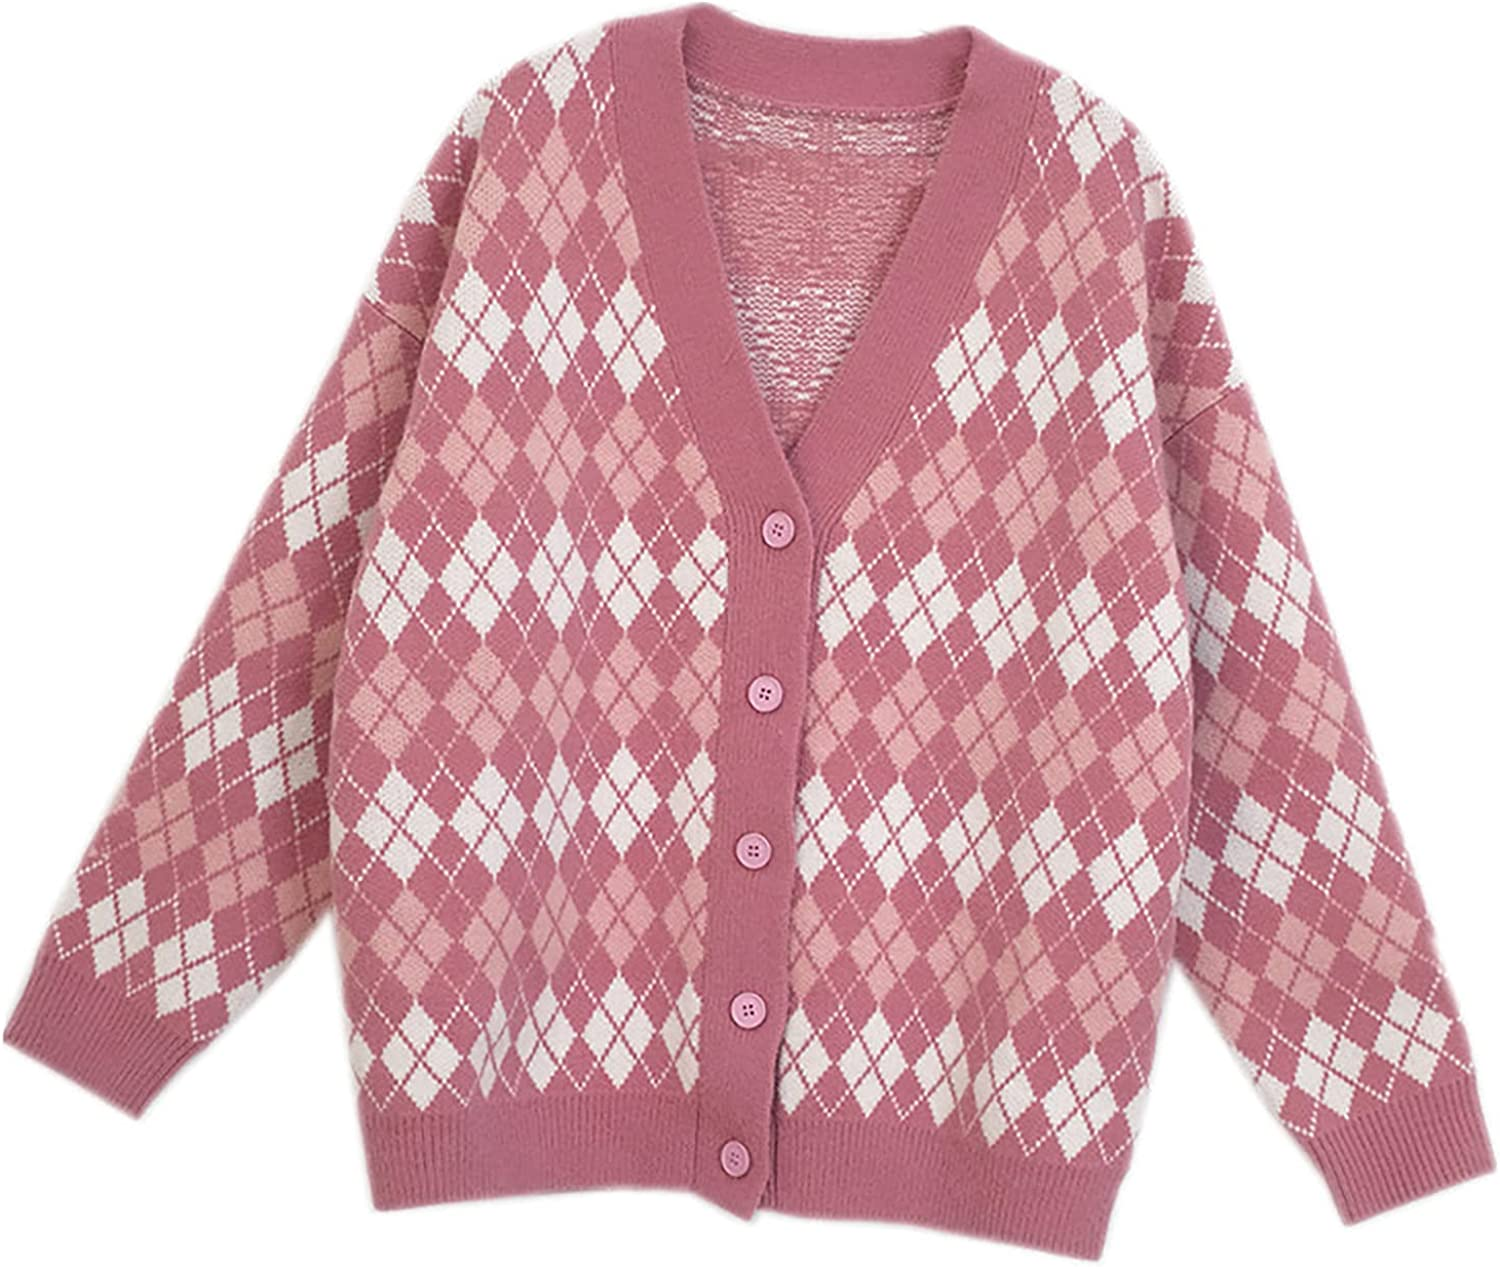 Womens Argyle Knit Cardigan V Neck Long Sleeve Button Down Cute Cardigan Sweater